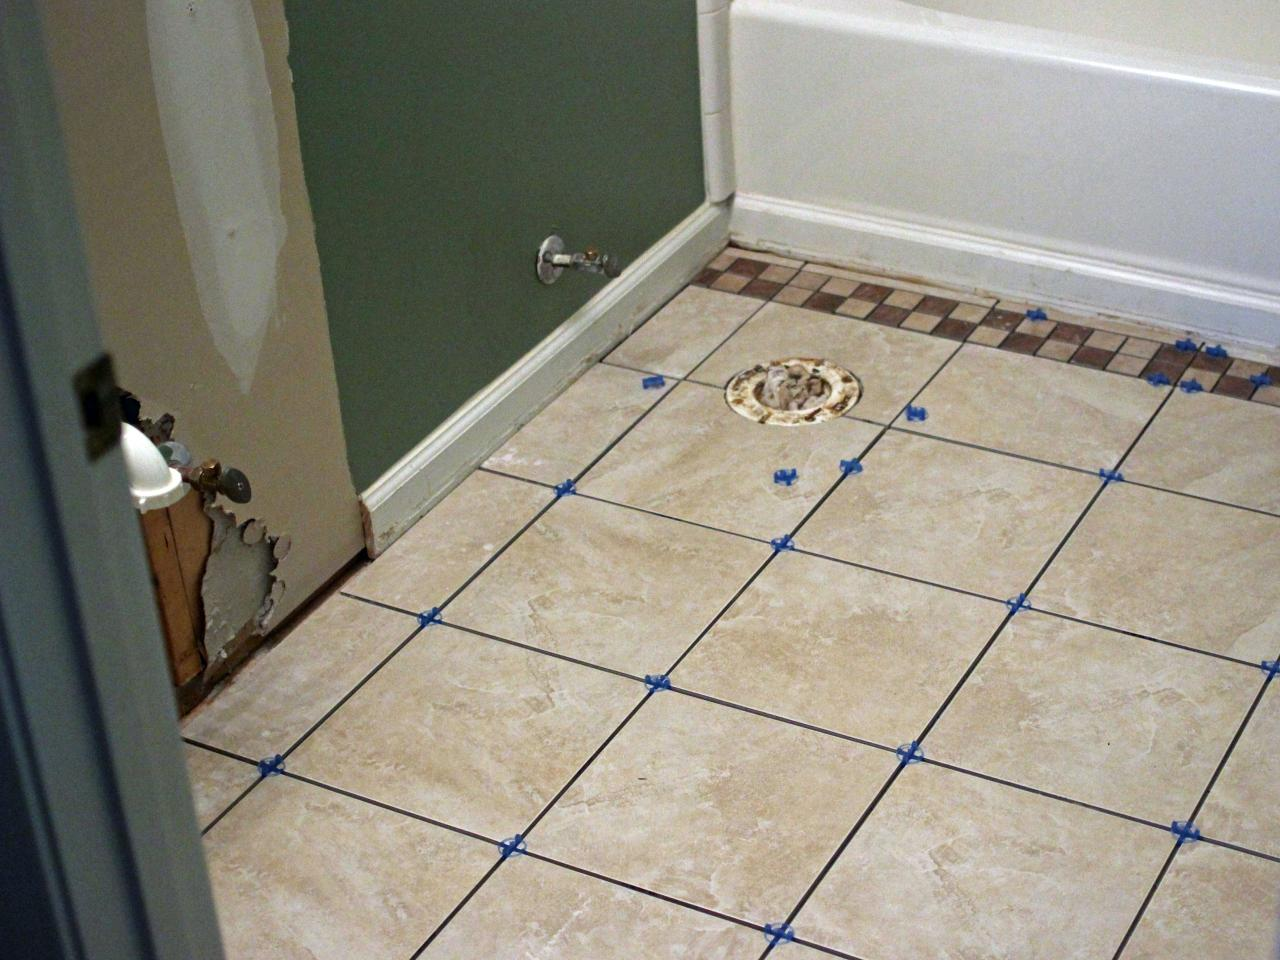 How to fit bathroom tiles - Step 6